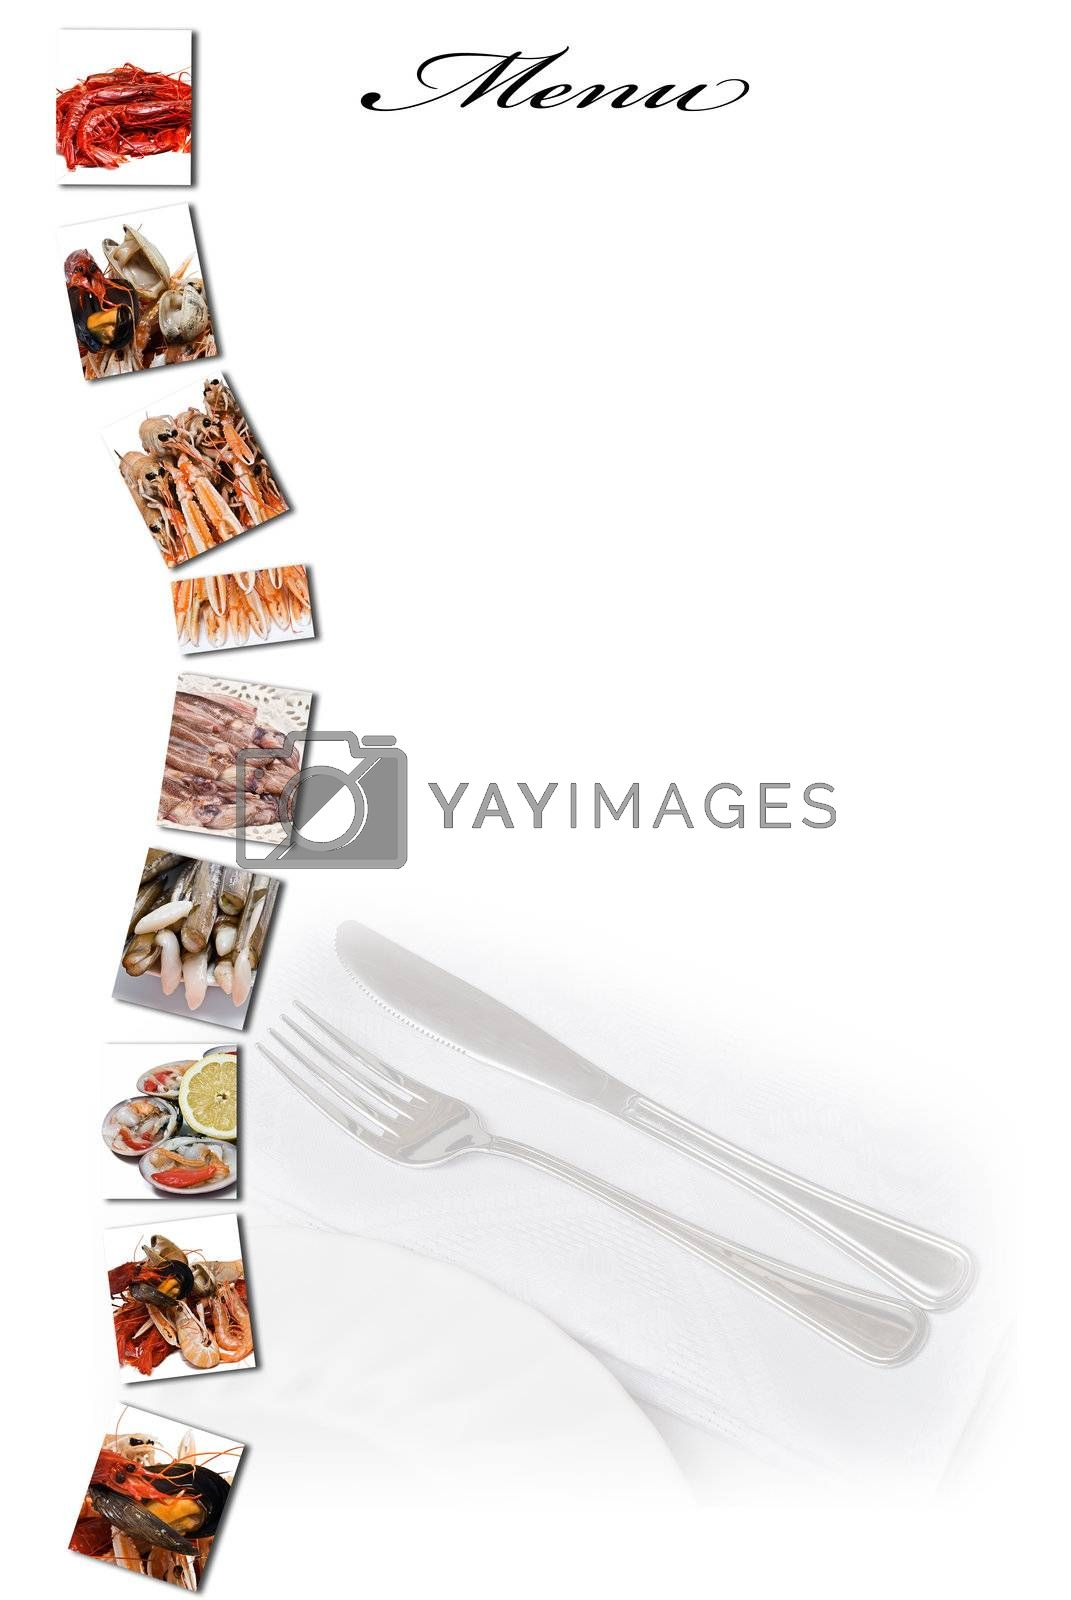 Menu for a restaurant. by angelsimon